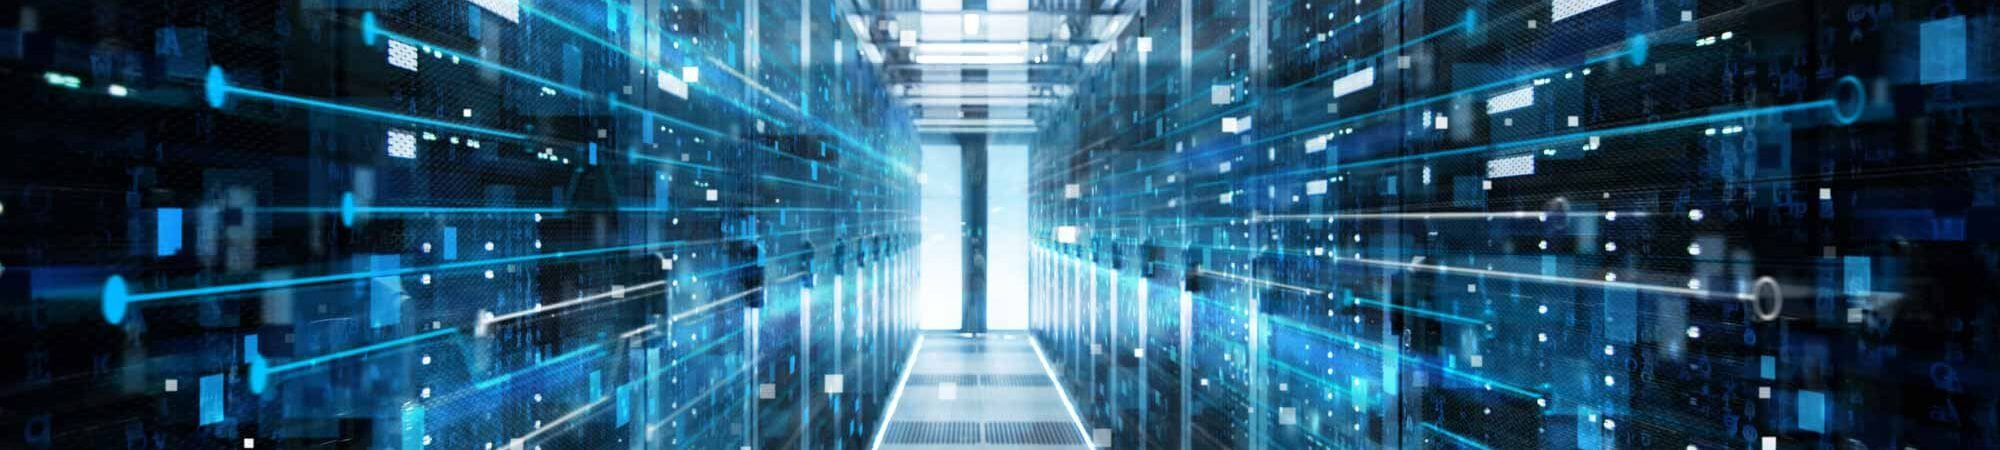 From Flash to Cloud – The New Data Center Architecture